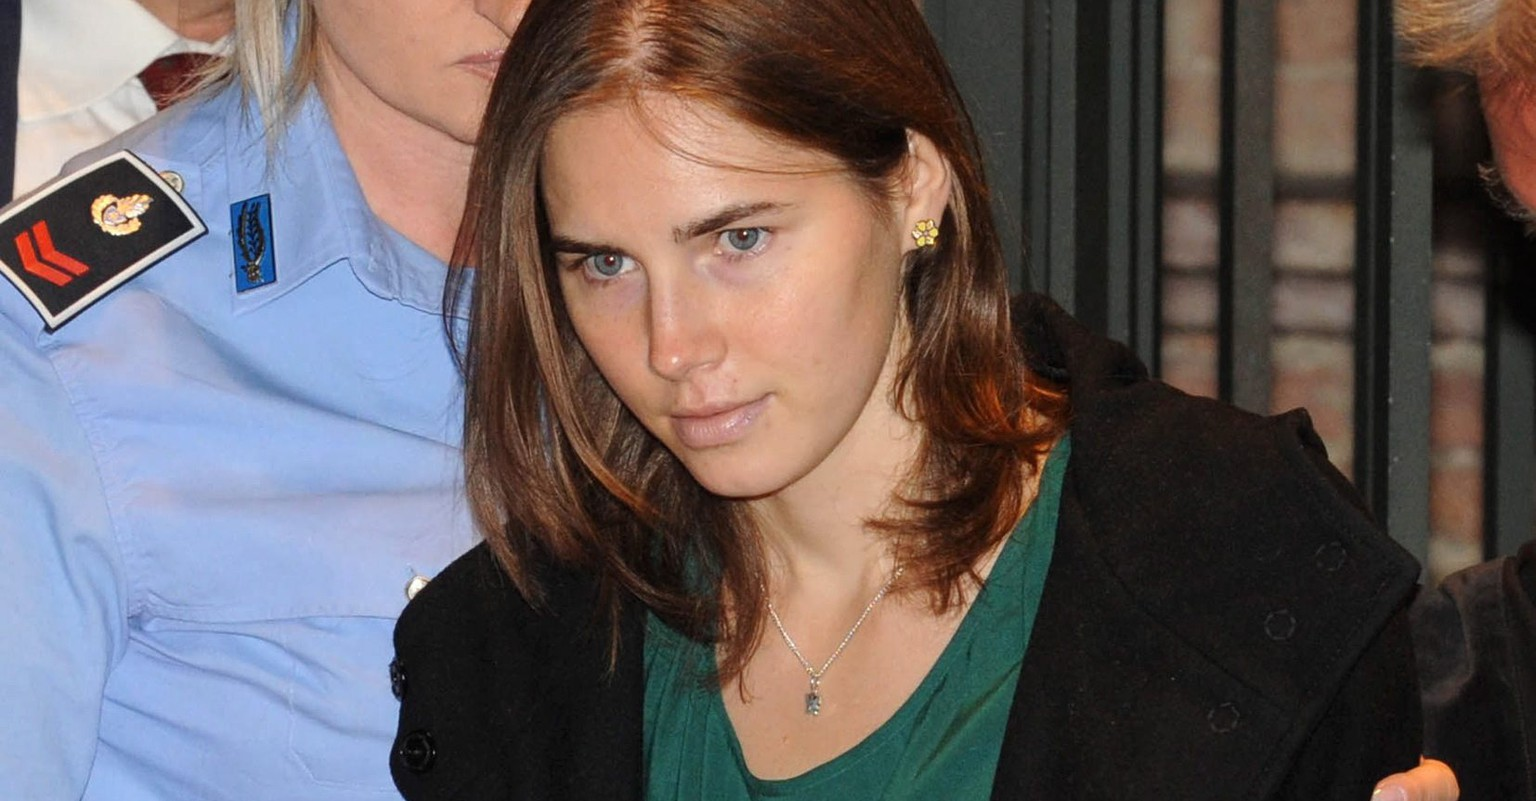 epa04048788 (FILE) A file photo dated 03 October 1011 shows US citizen Amanda Knox arriving at her appeal trial for the murder of Meredith Kercher, in the court in Perugia, Italy.  An Italian court in Florence on 30 January 2014 convicts US student Amanda Knox of the 2007 murder of Briton Meredith Kercher, overturning an appeal made in 2011. She receives a 28-year prison sentence. Her former boyfrioend, Italian Raffaele Sollecito, receives a 25-year prison sentence.  EPA/PIETRO CROCCHIONI *** Local Caption *** 50768616